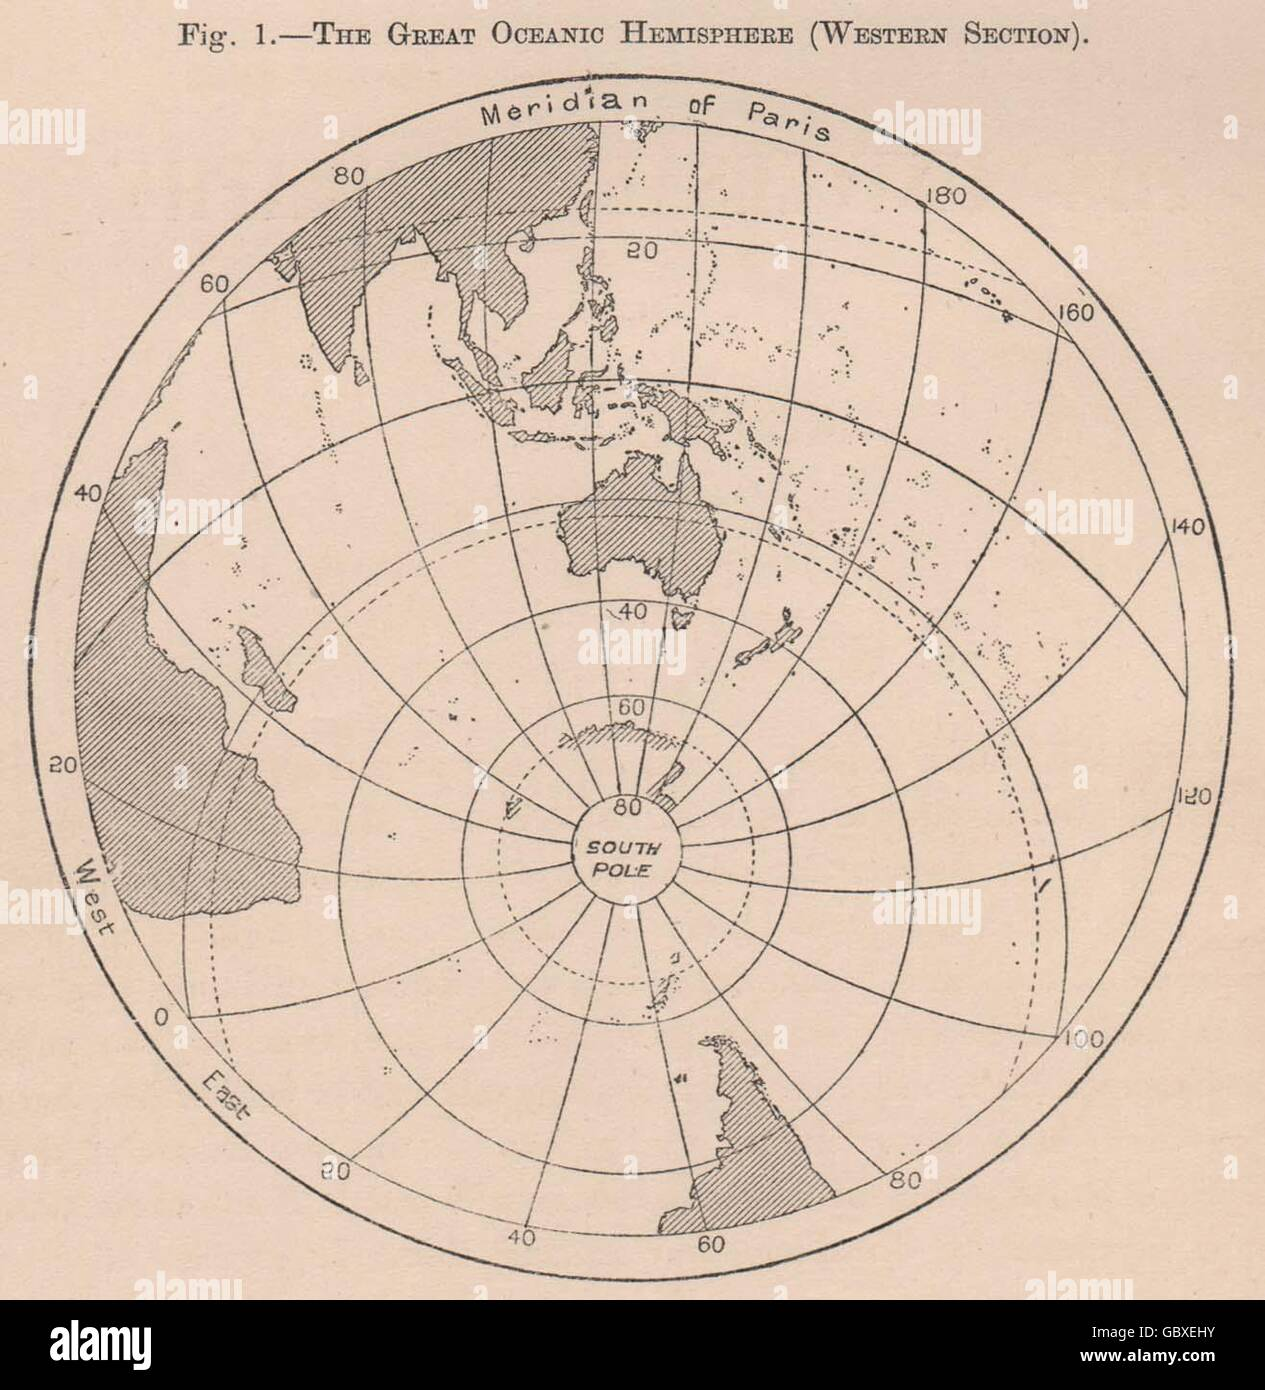 The Great Oceanic Hemisphere (Western Section) . World, 1885 antique map - Stock Image